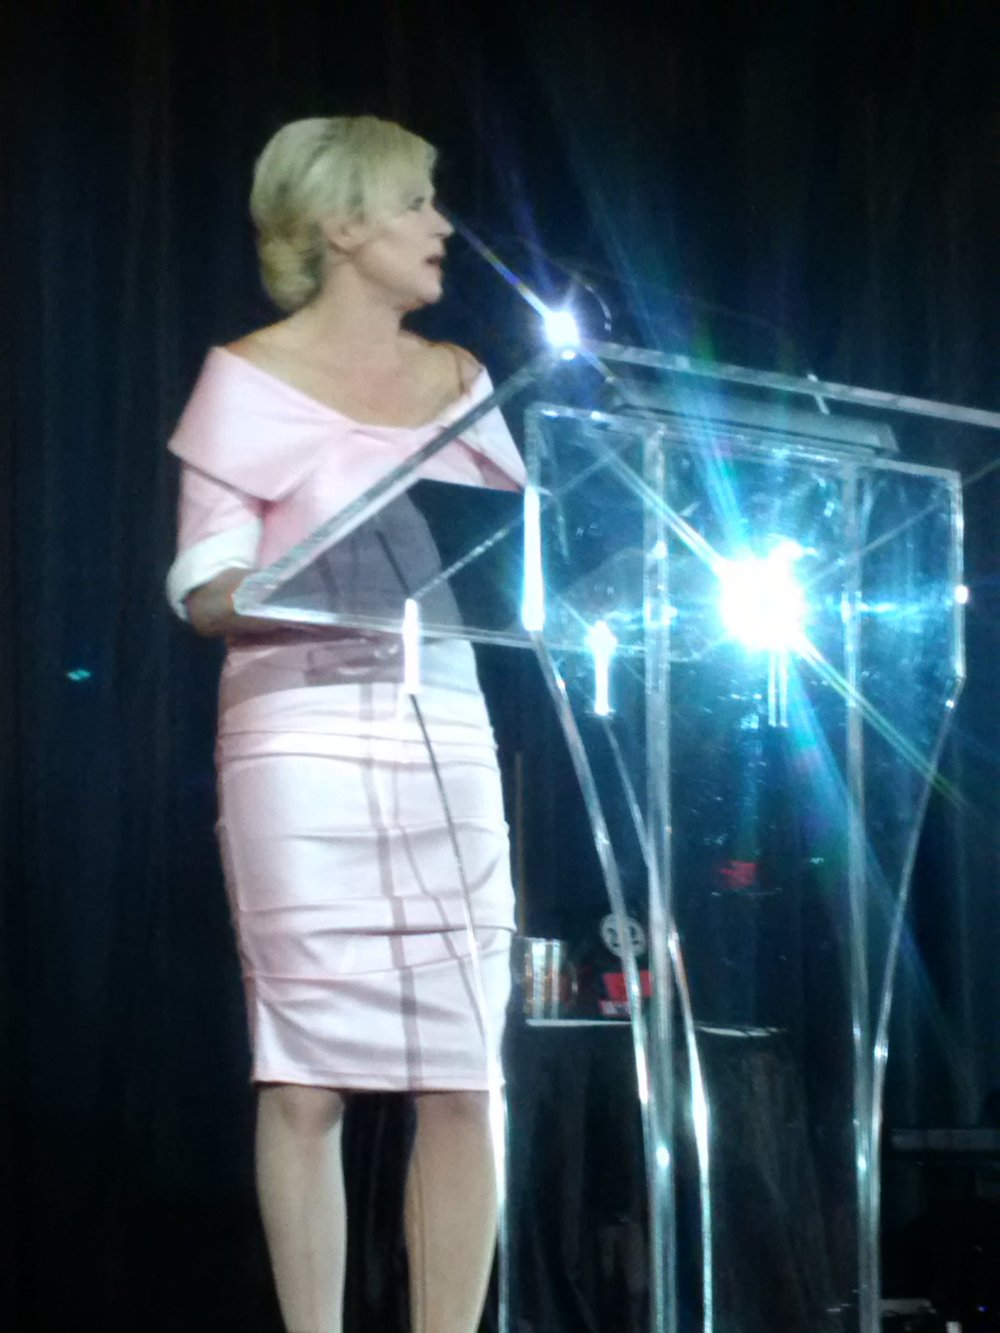 Mississauga Mayor Bonnie Crombie  gives a keynote speech, and wears one of Maya Charbin's award winning designs.